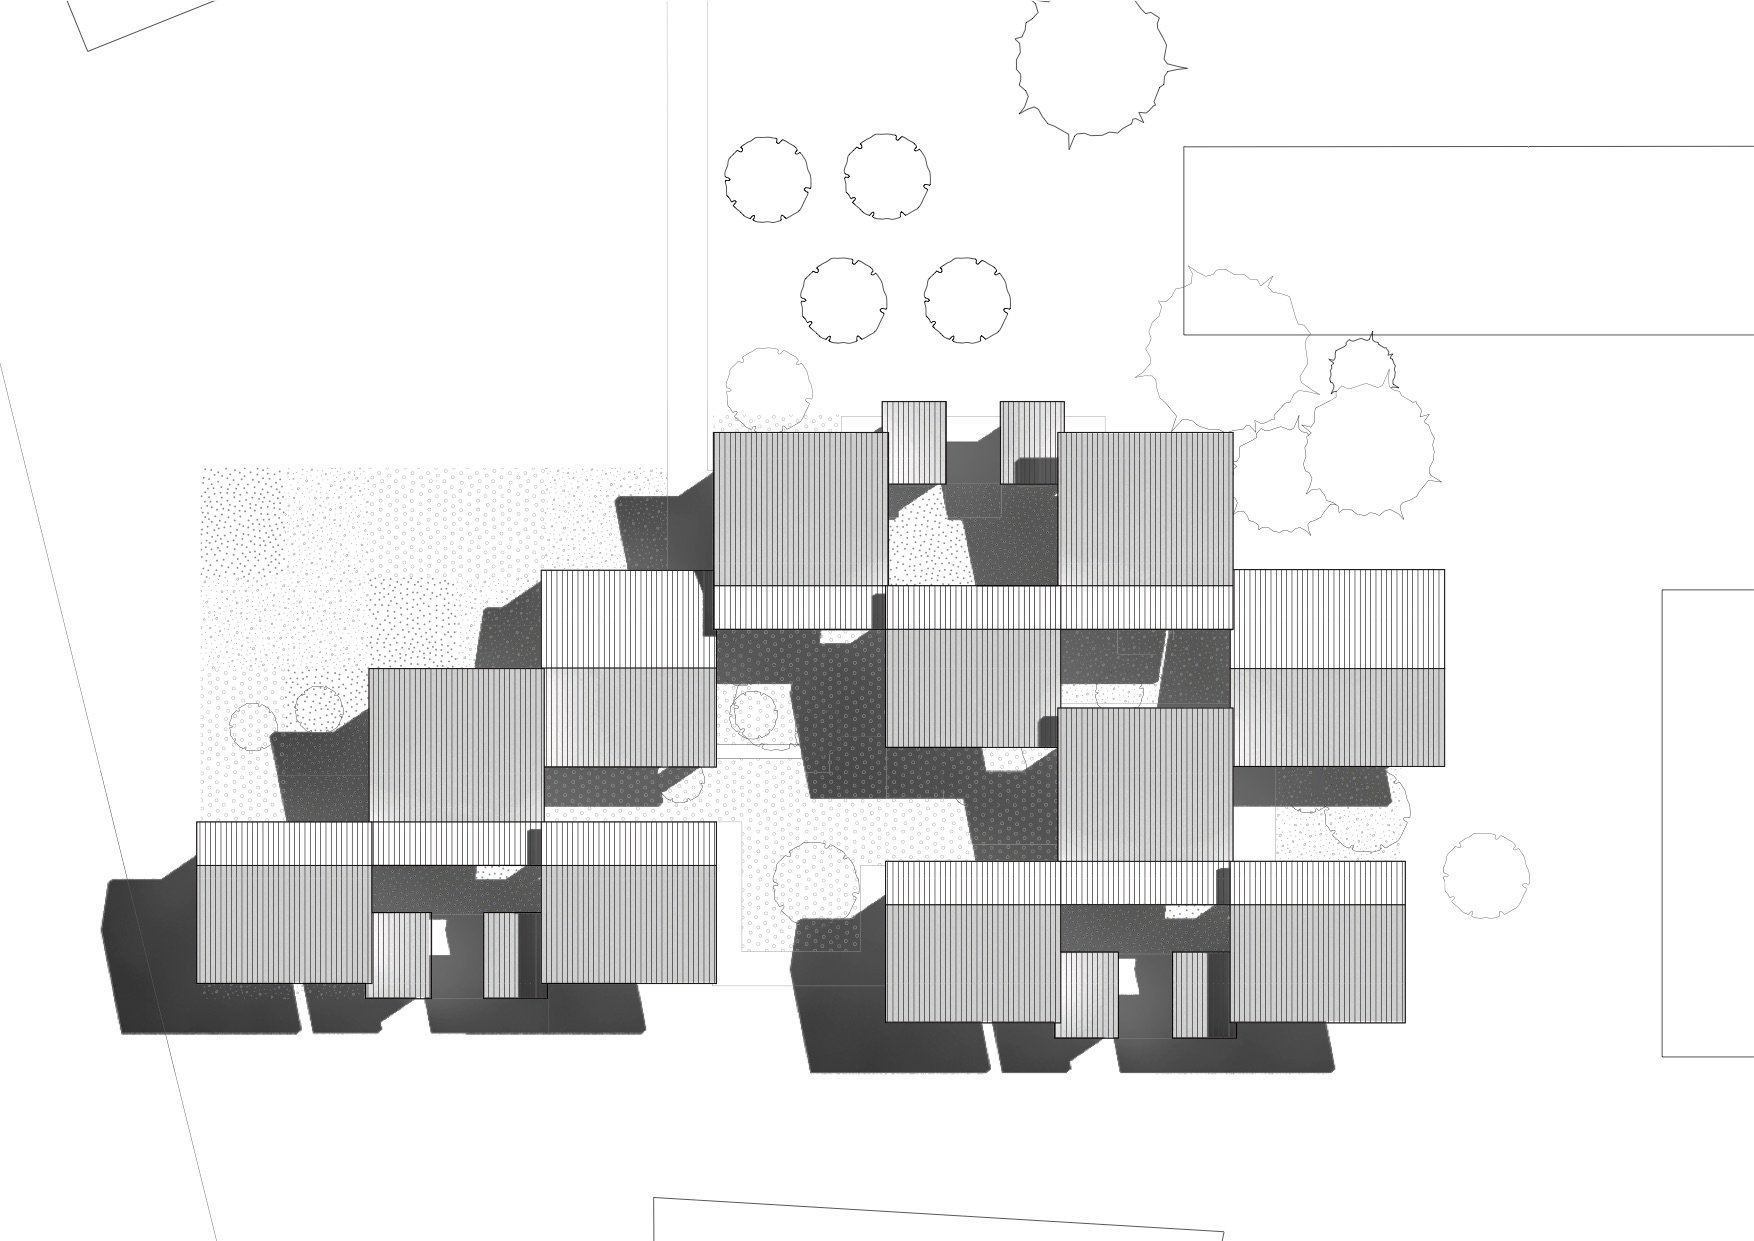 MASS Design Group - Maternity Waiting Village | The Plan